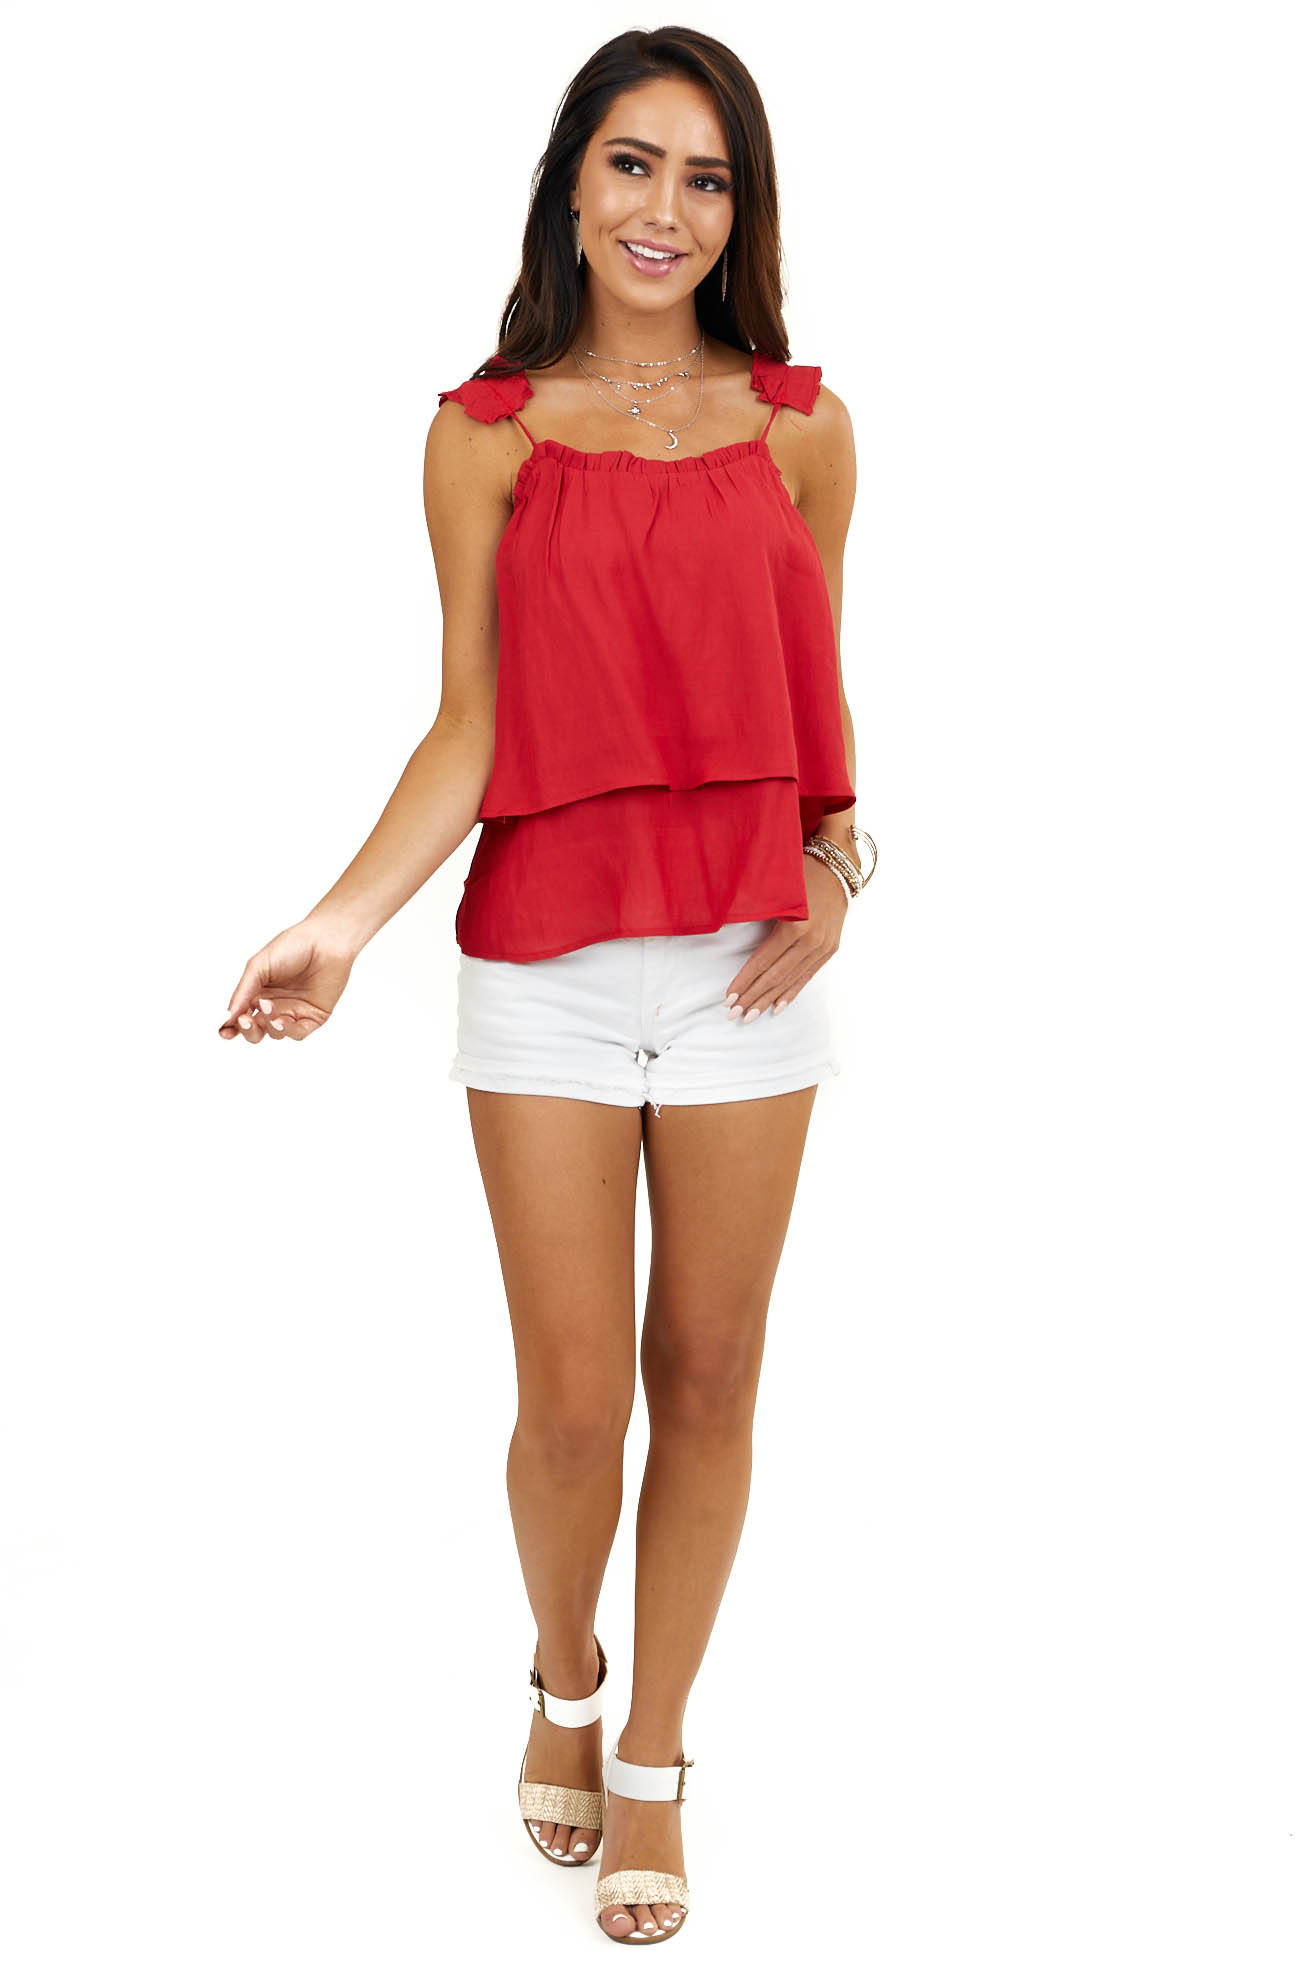 Crimson Red Layered Woven Tank Top with Ruffled Straps